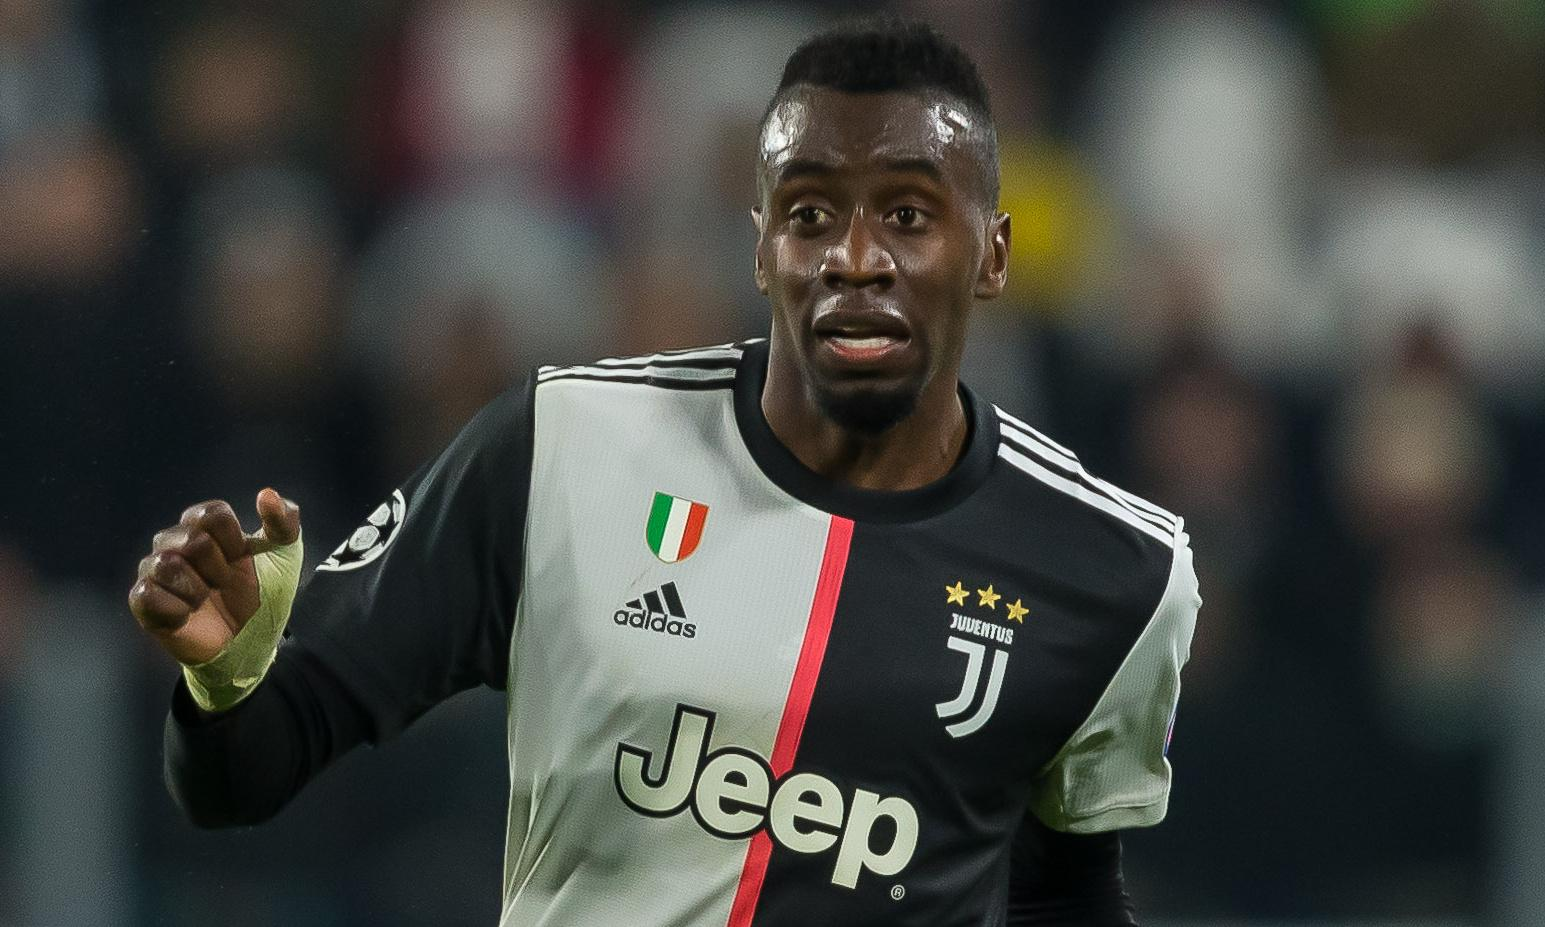 Football transfer rumours: Matuidi to Manchester United or Arsenal?